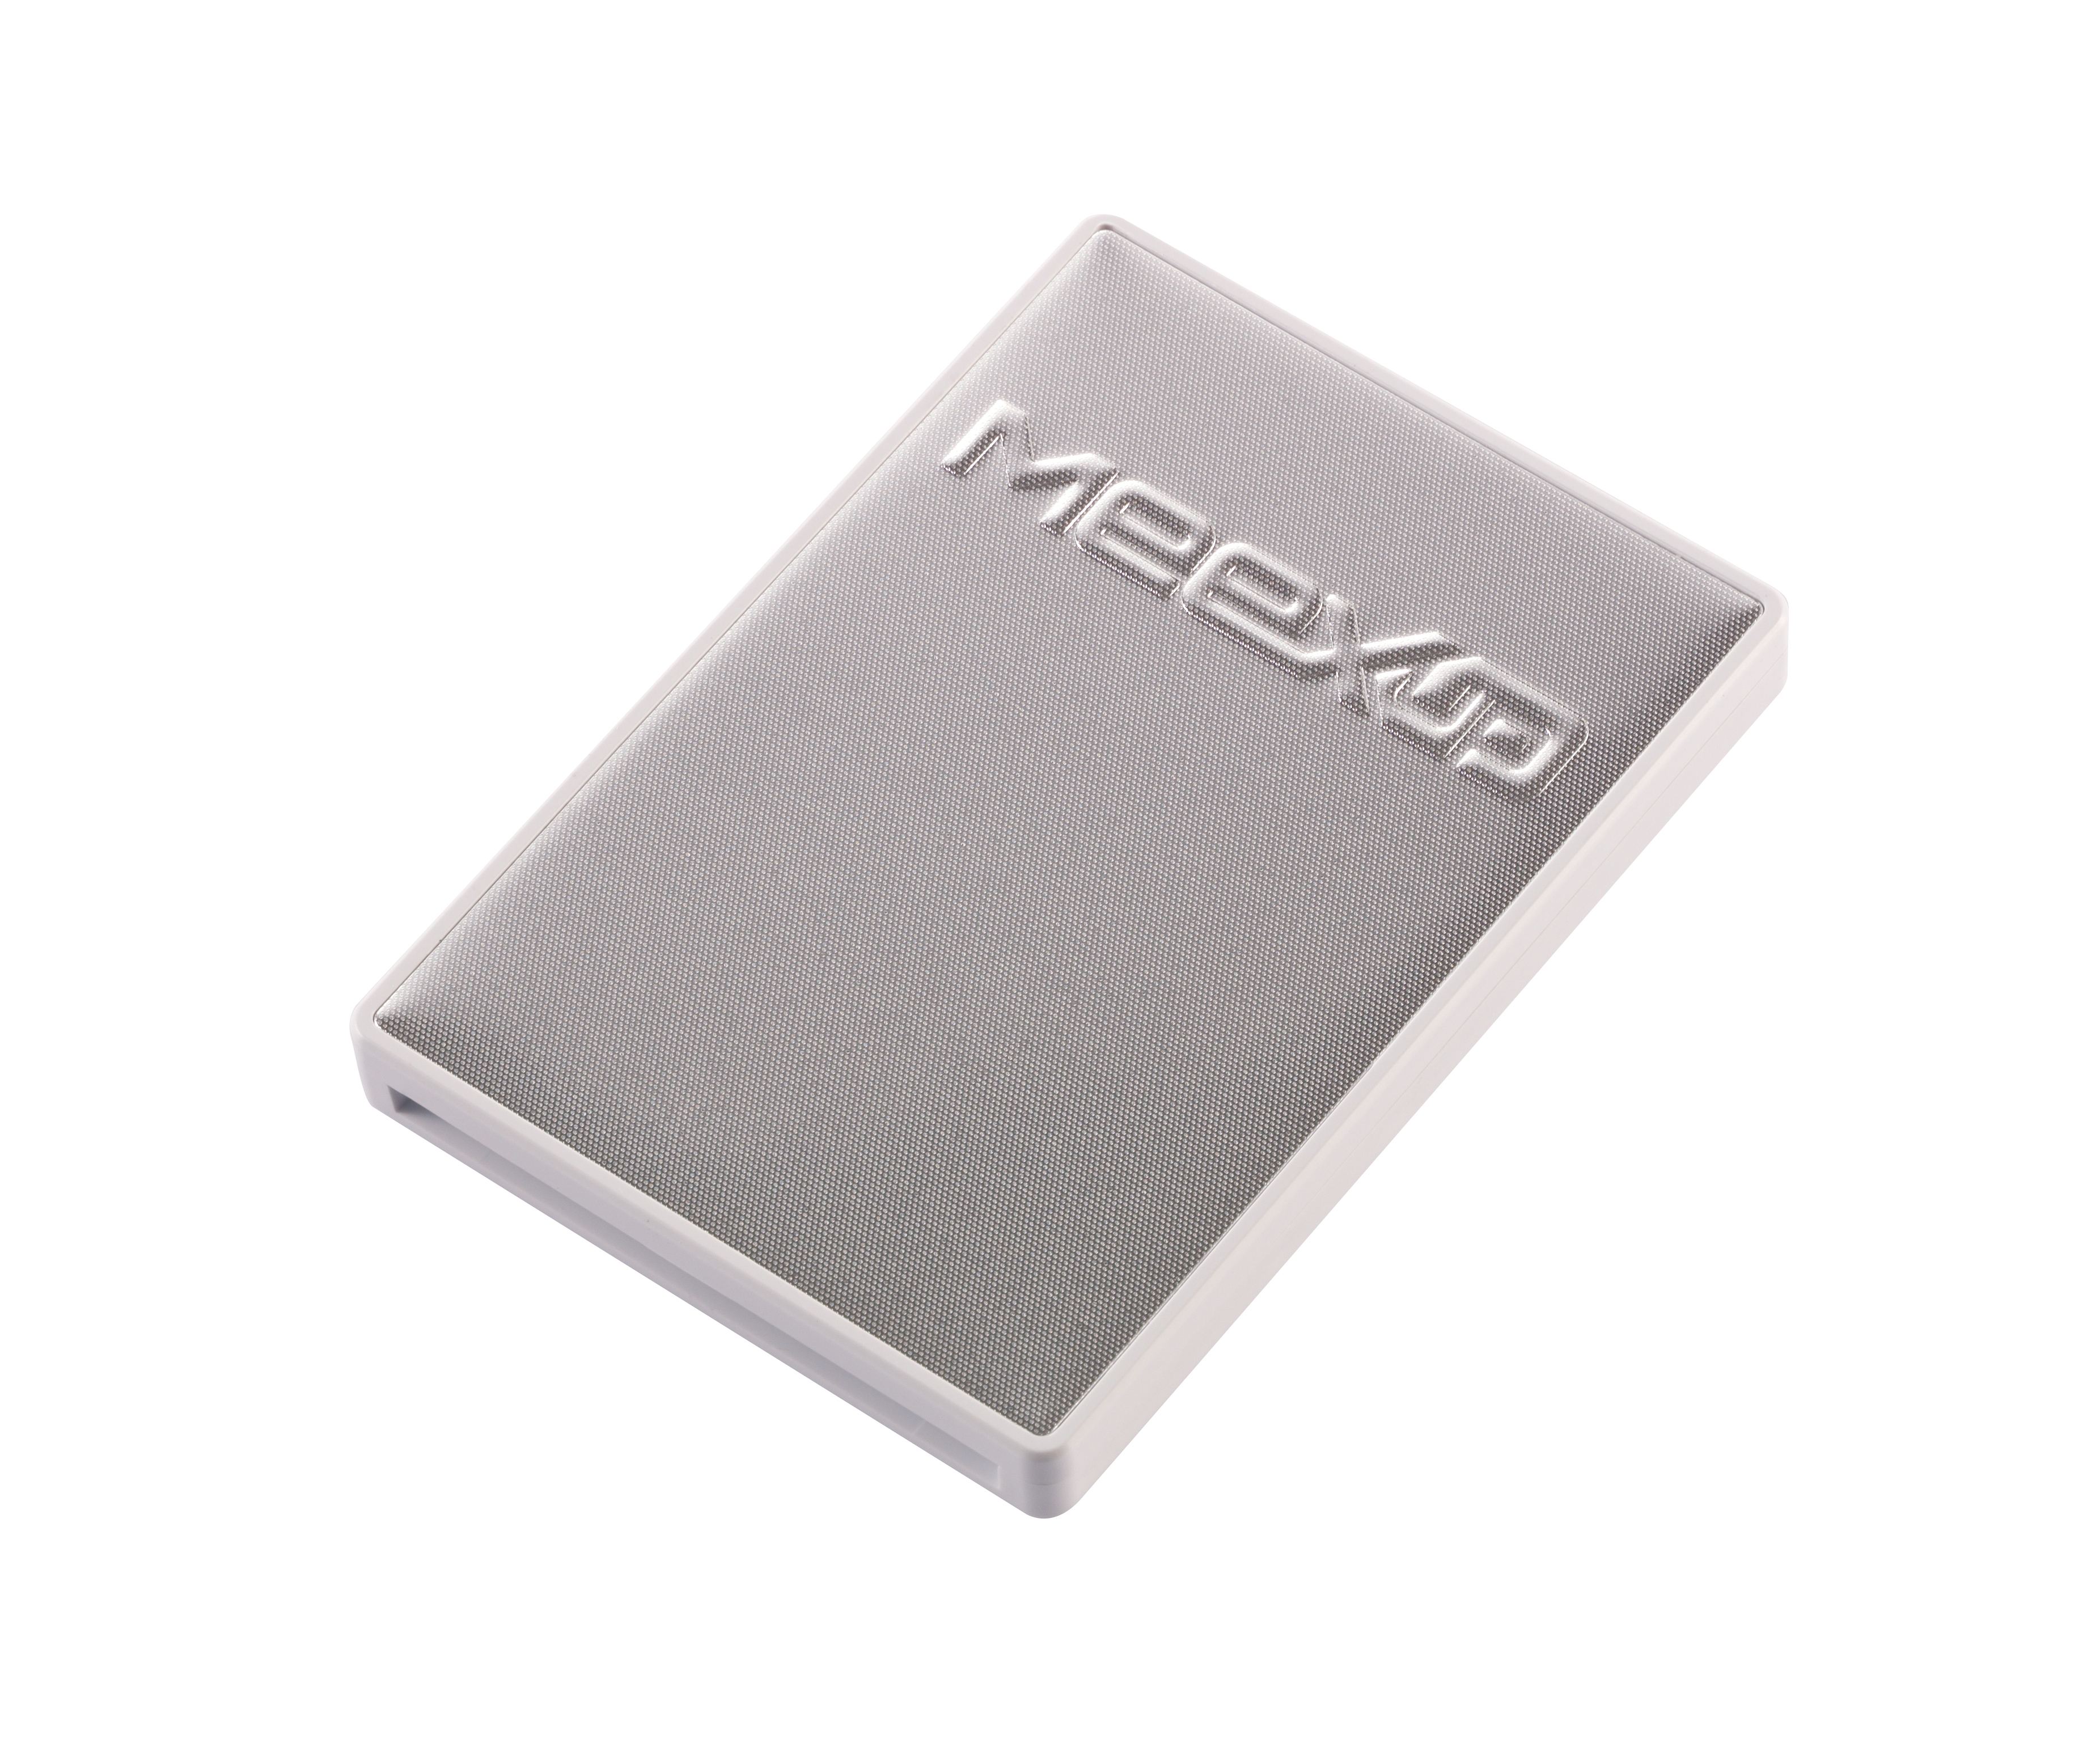 MeexUp cardholder 6 Cards White-Silver